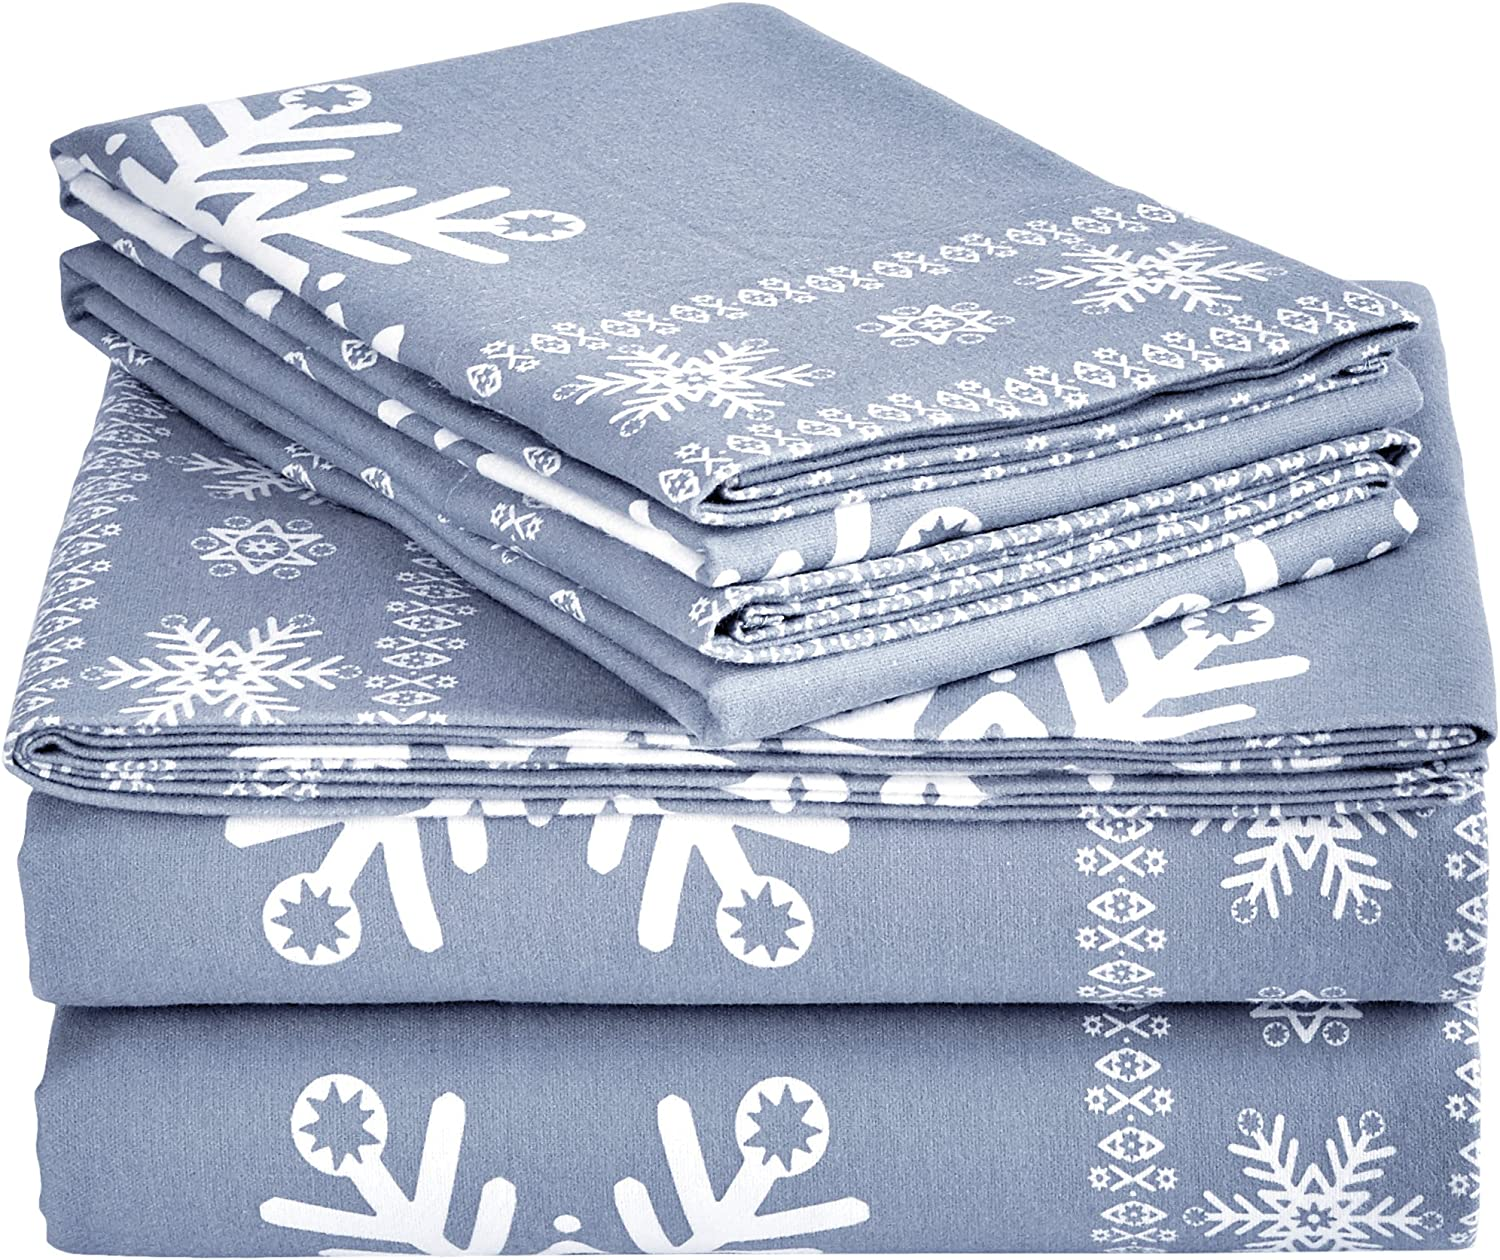 Snowflake Toss Kohls Department Store Cuddl Duds California King Flannel Sheet With Deep Pockets 4 Pieces Sheet Pillowcase Sets